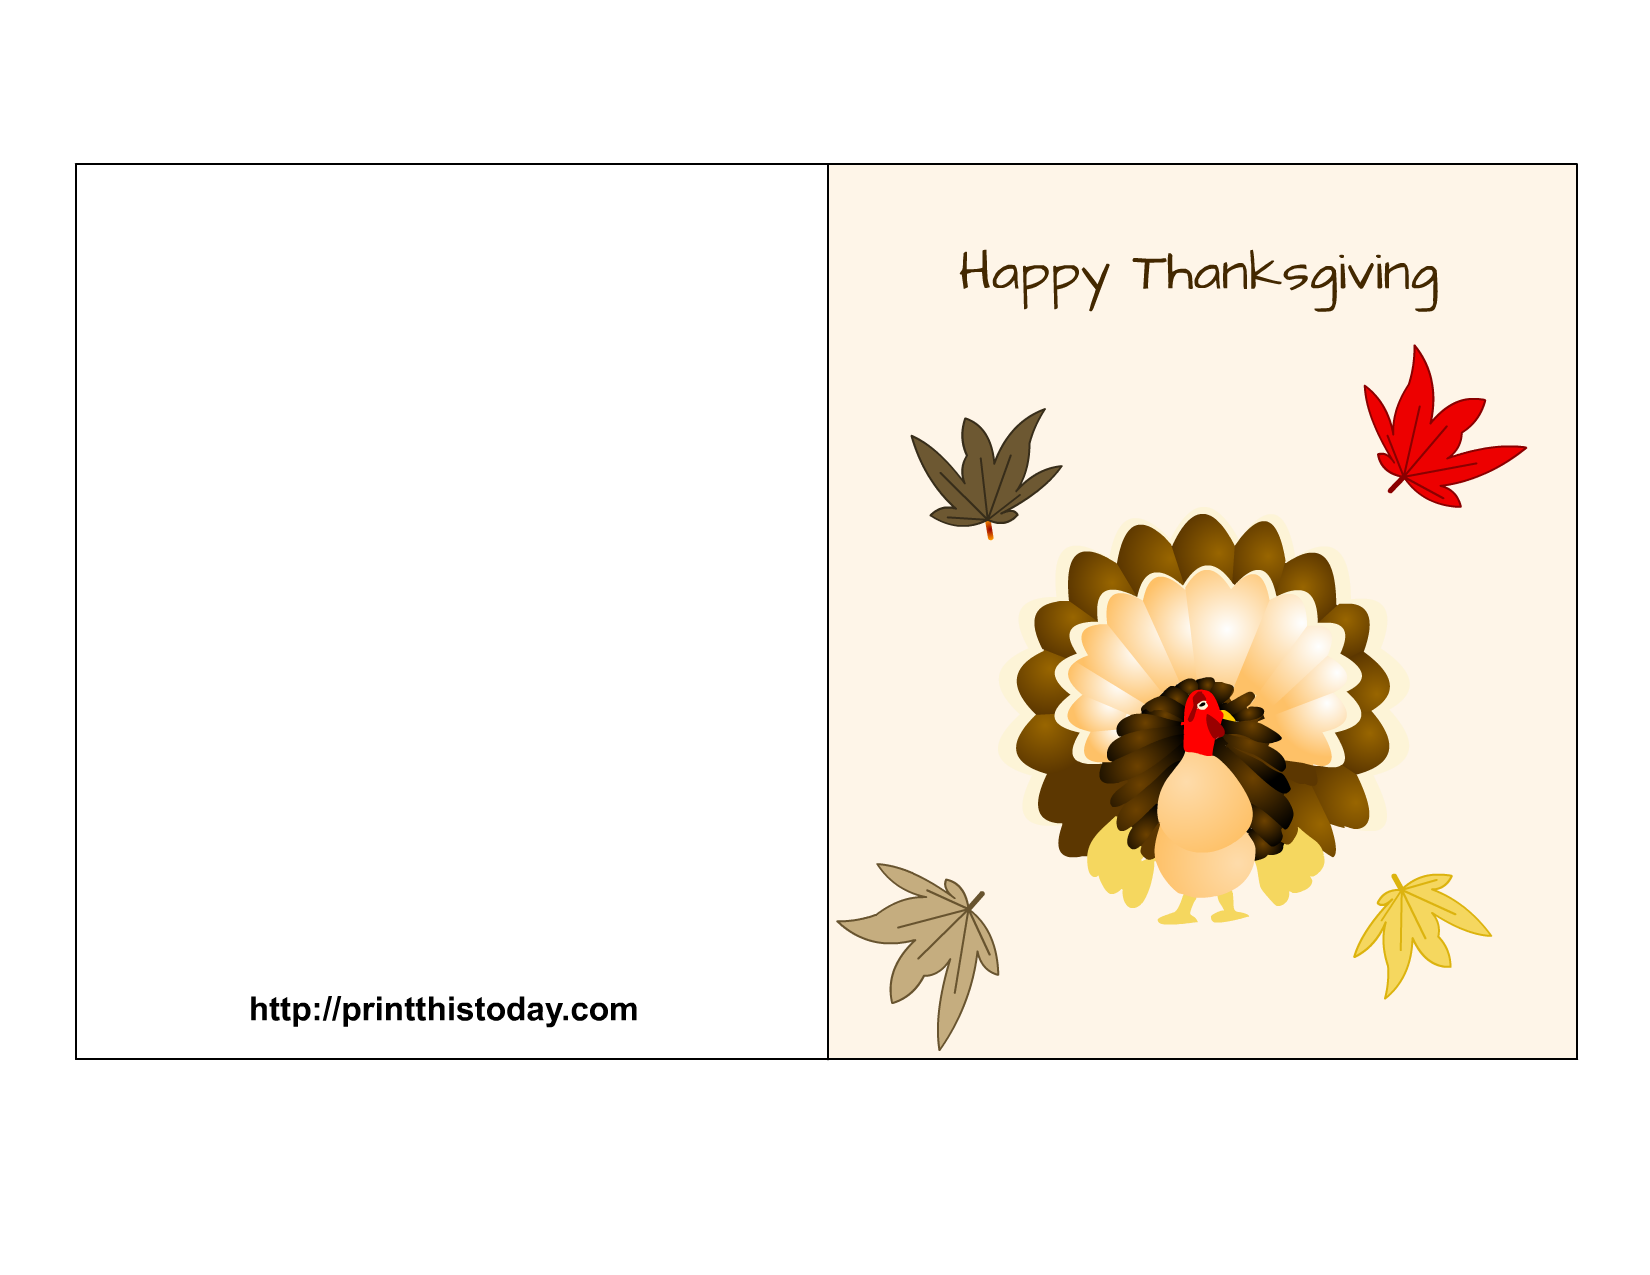 Printable thanksgiving cards thanksgiving day pinterest printable thanksgiving day greeting cards with messages quotes free m4hsunfo